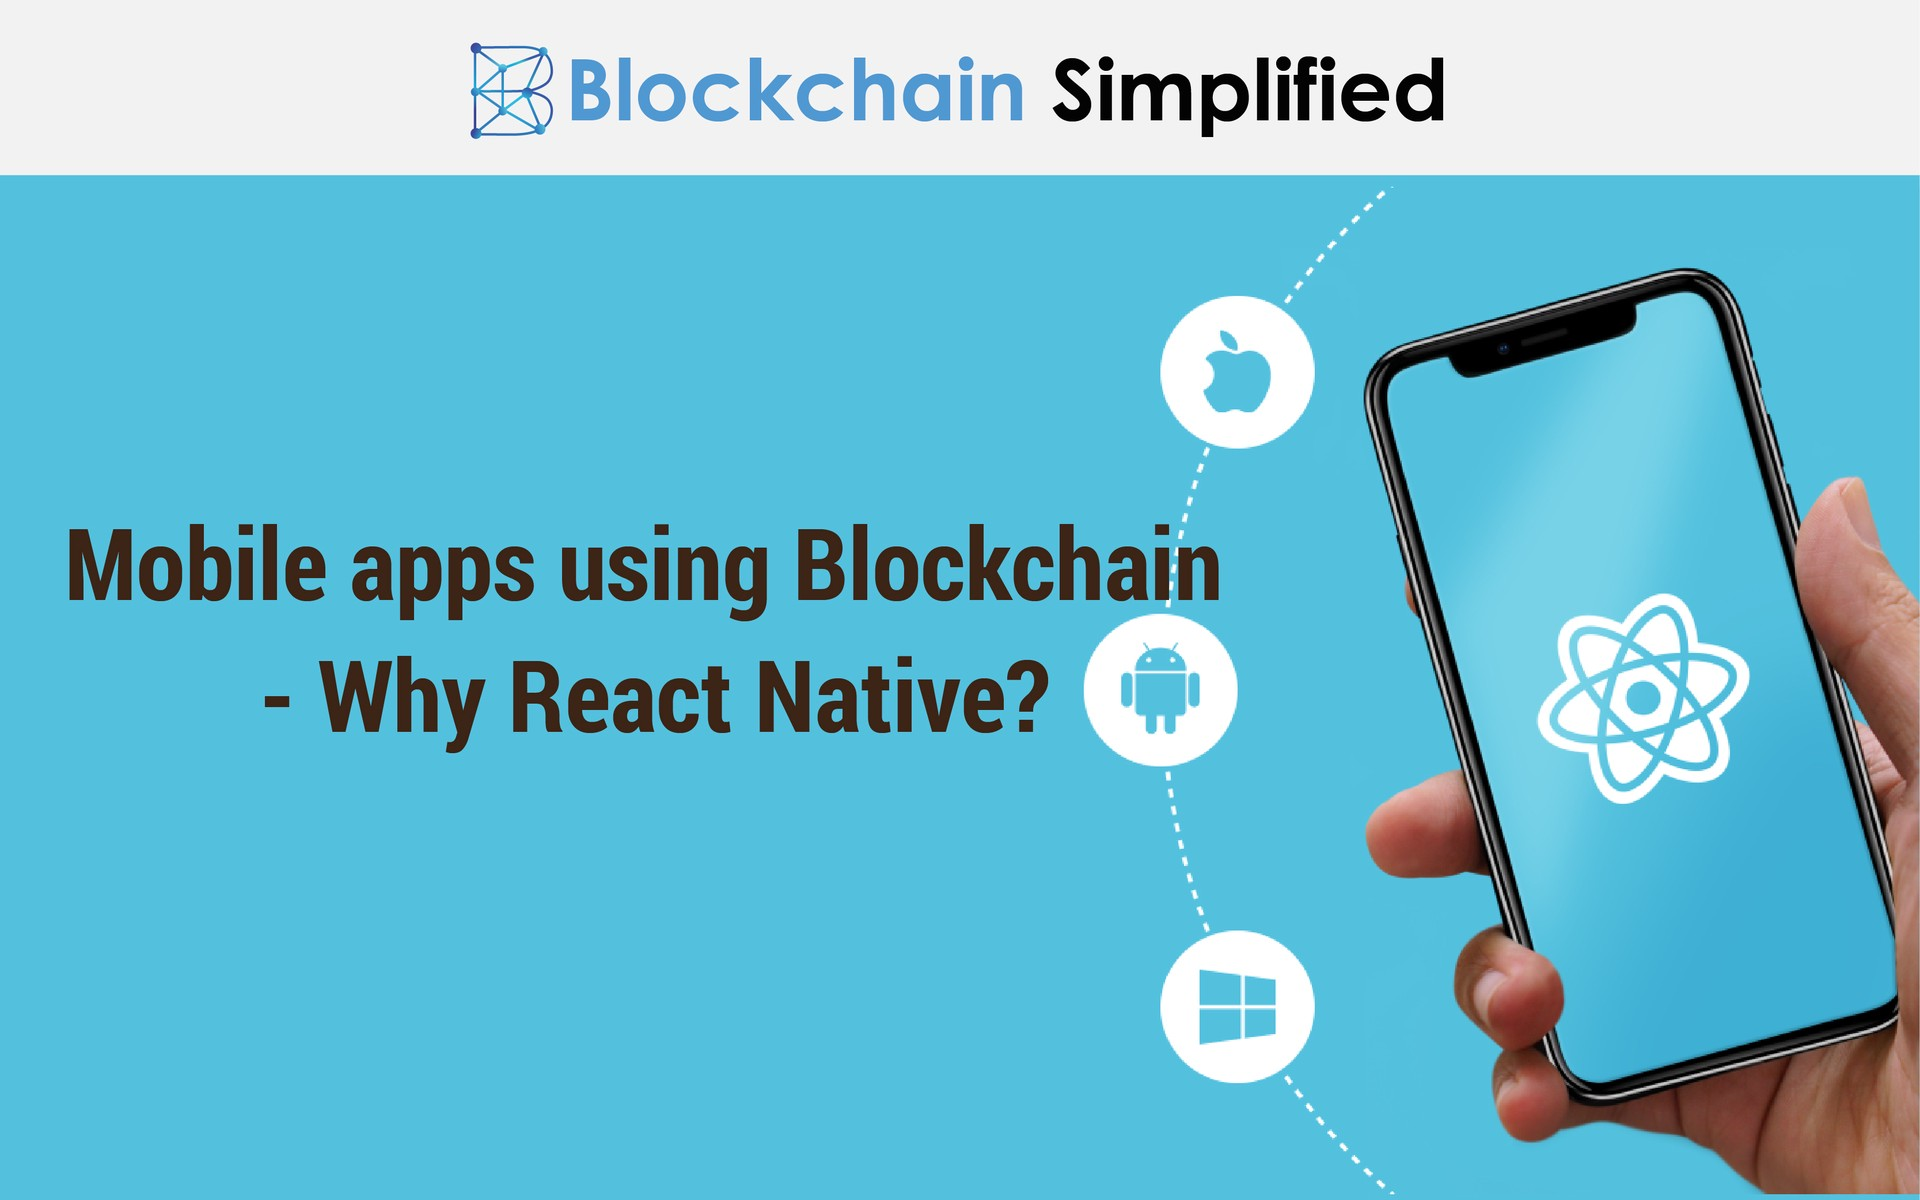 Mobile apps using Blockchain - React Native